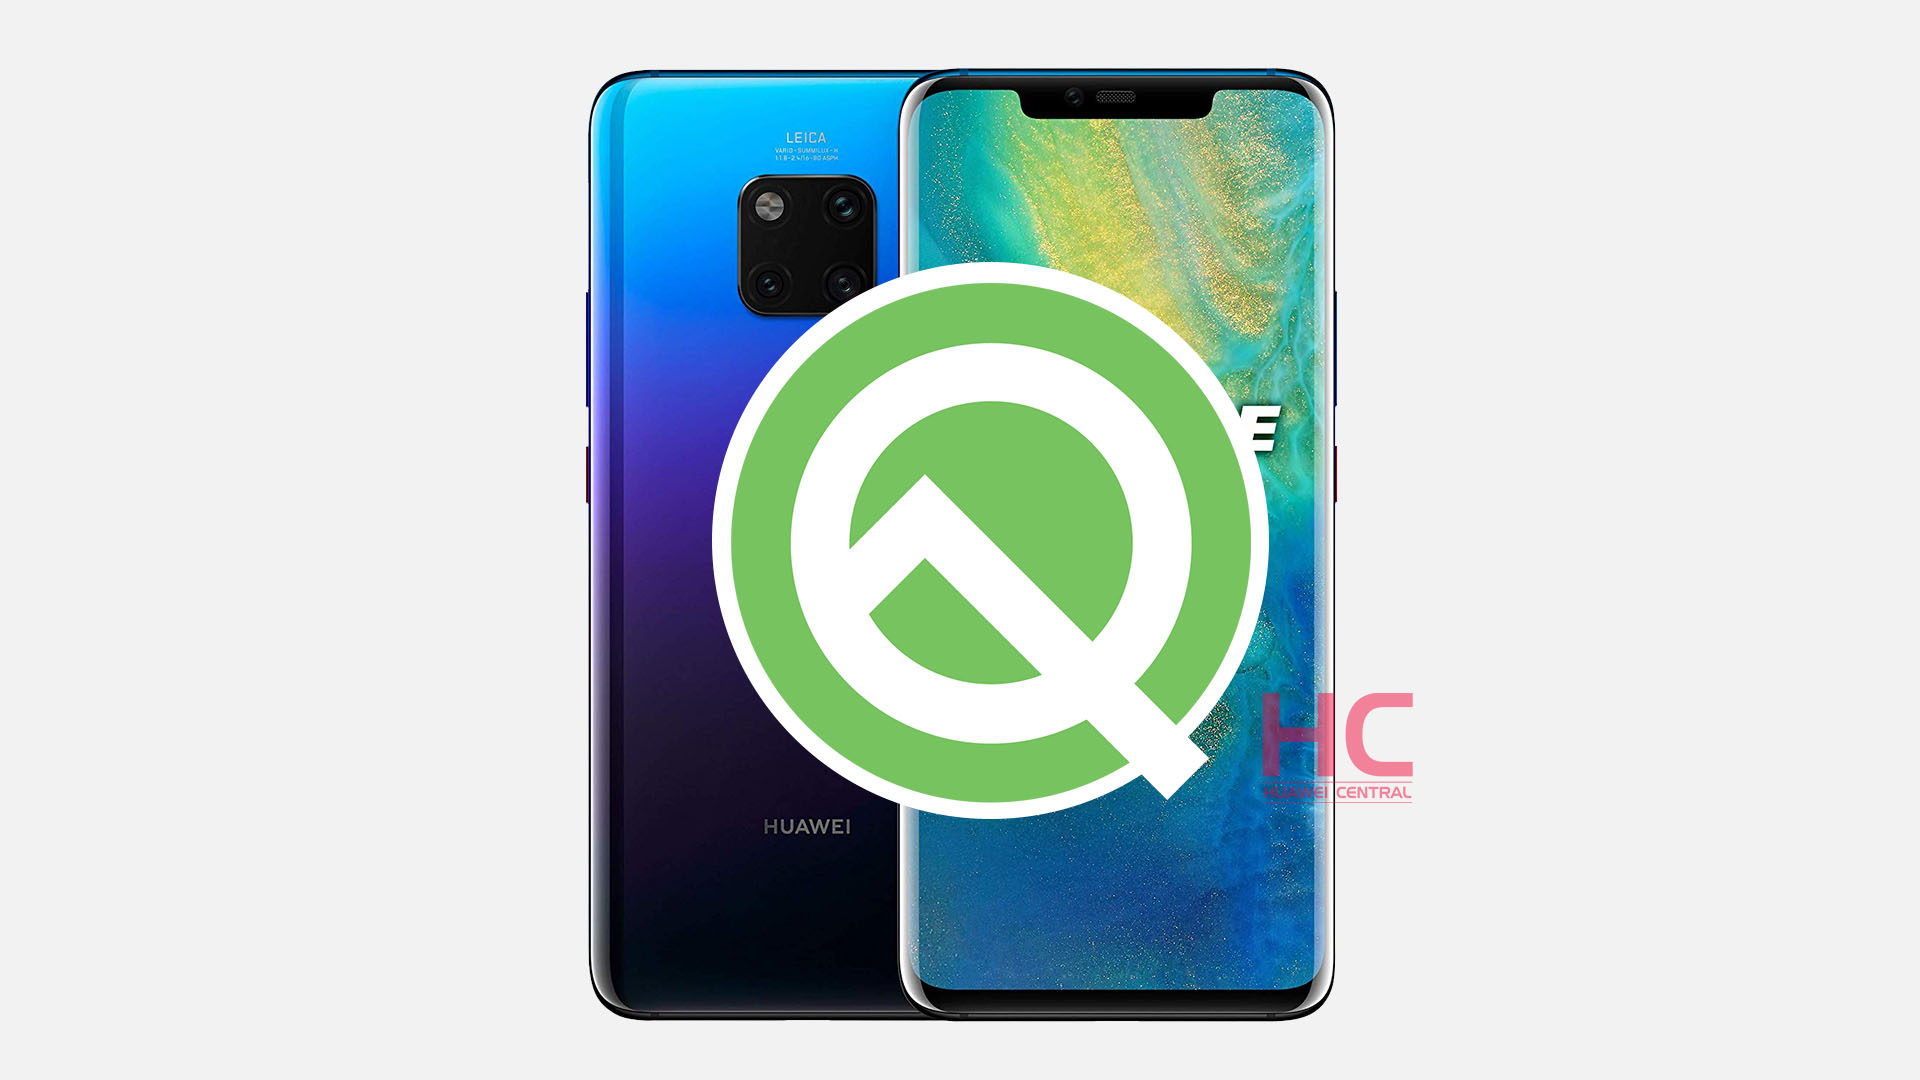 How to install Android Q Beta on Huawei Mate 20 Pro - Huawei